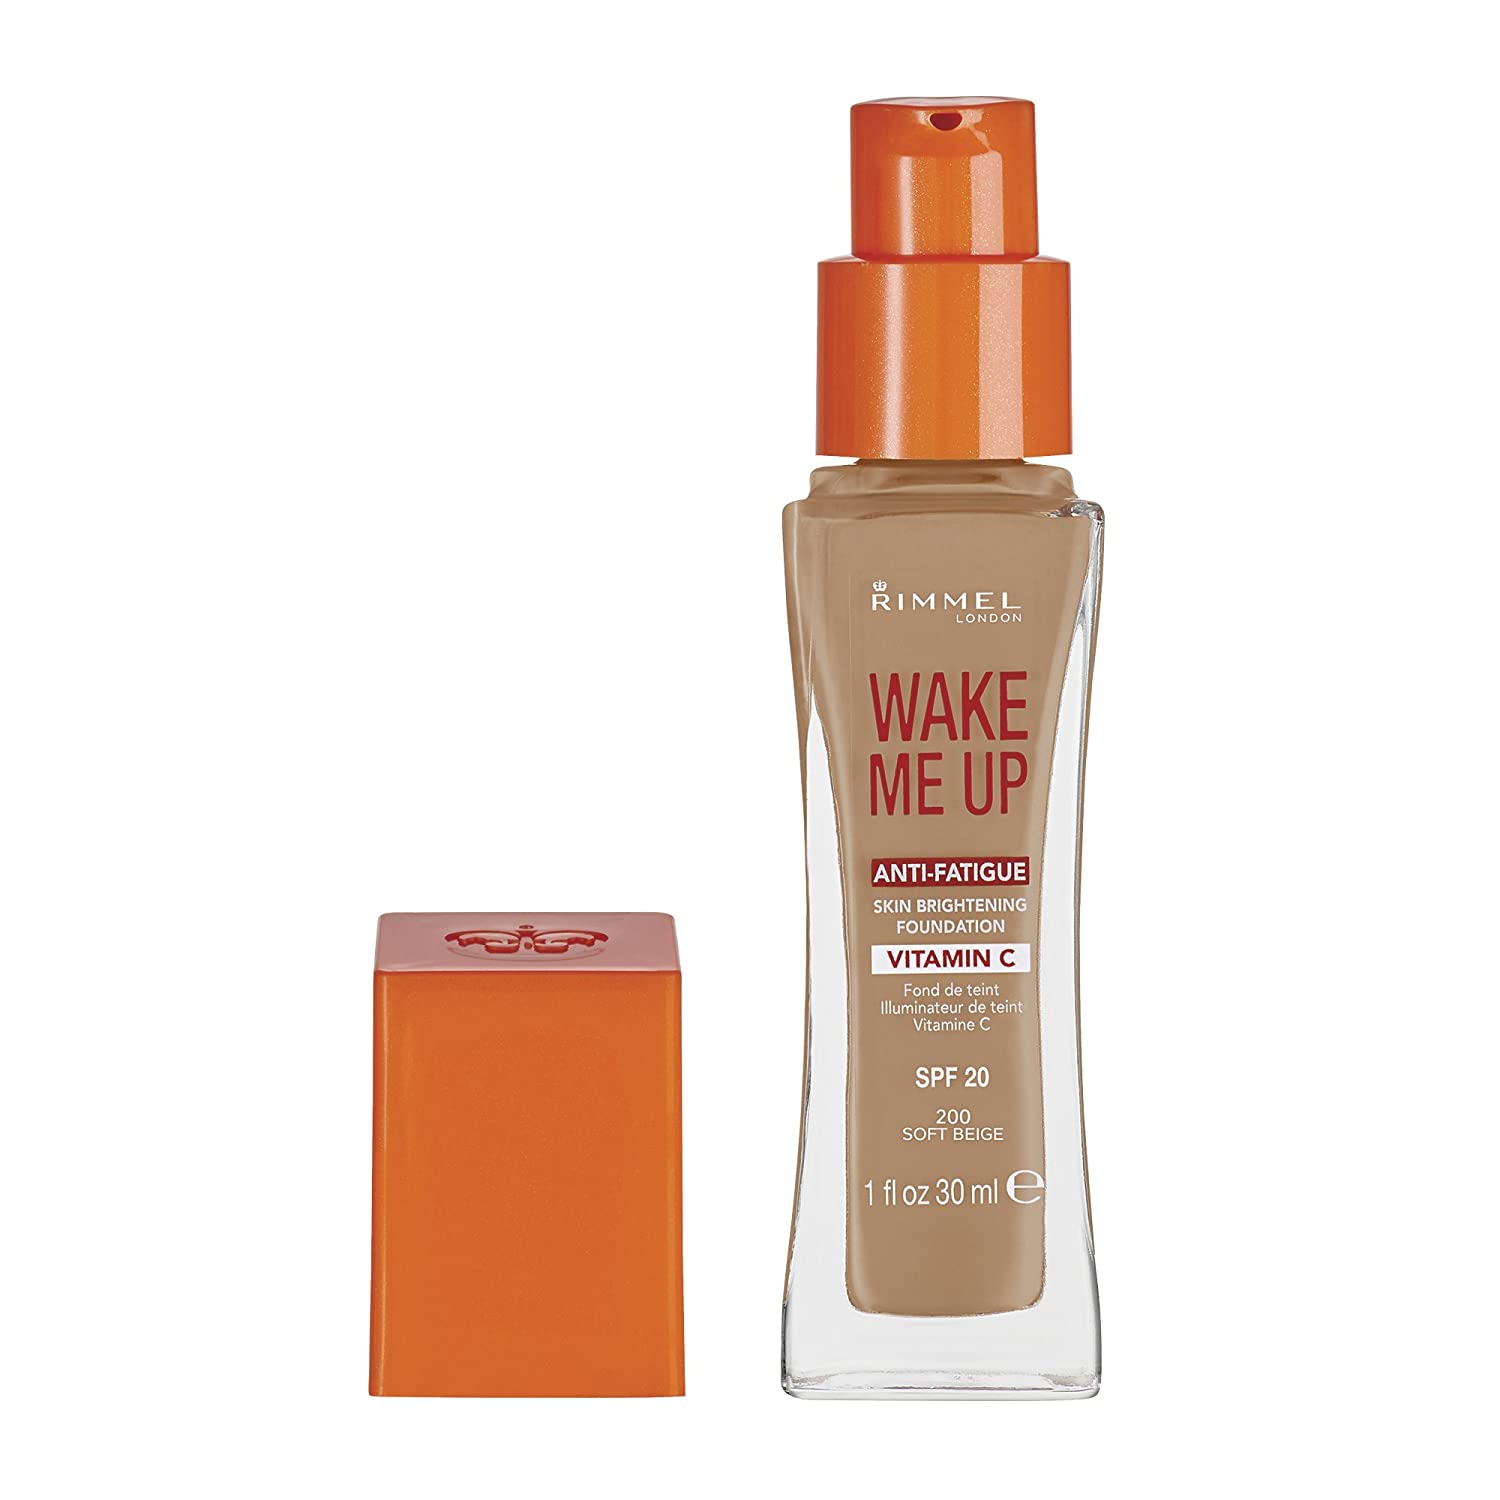 Rimmel London - Wake Me Up Foundation Coty